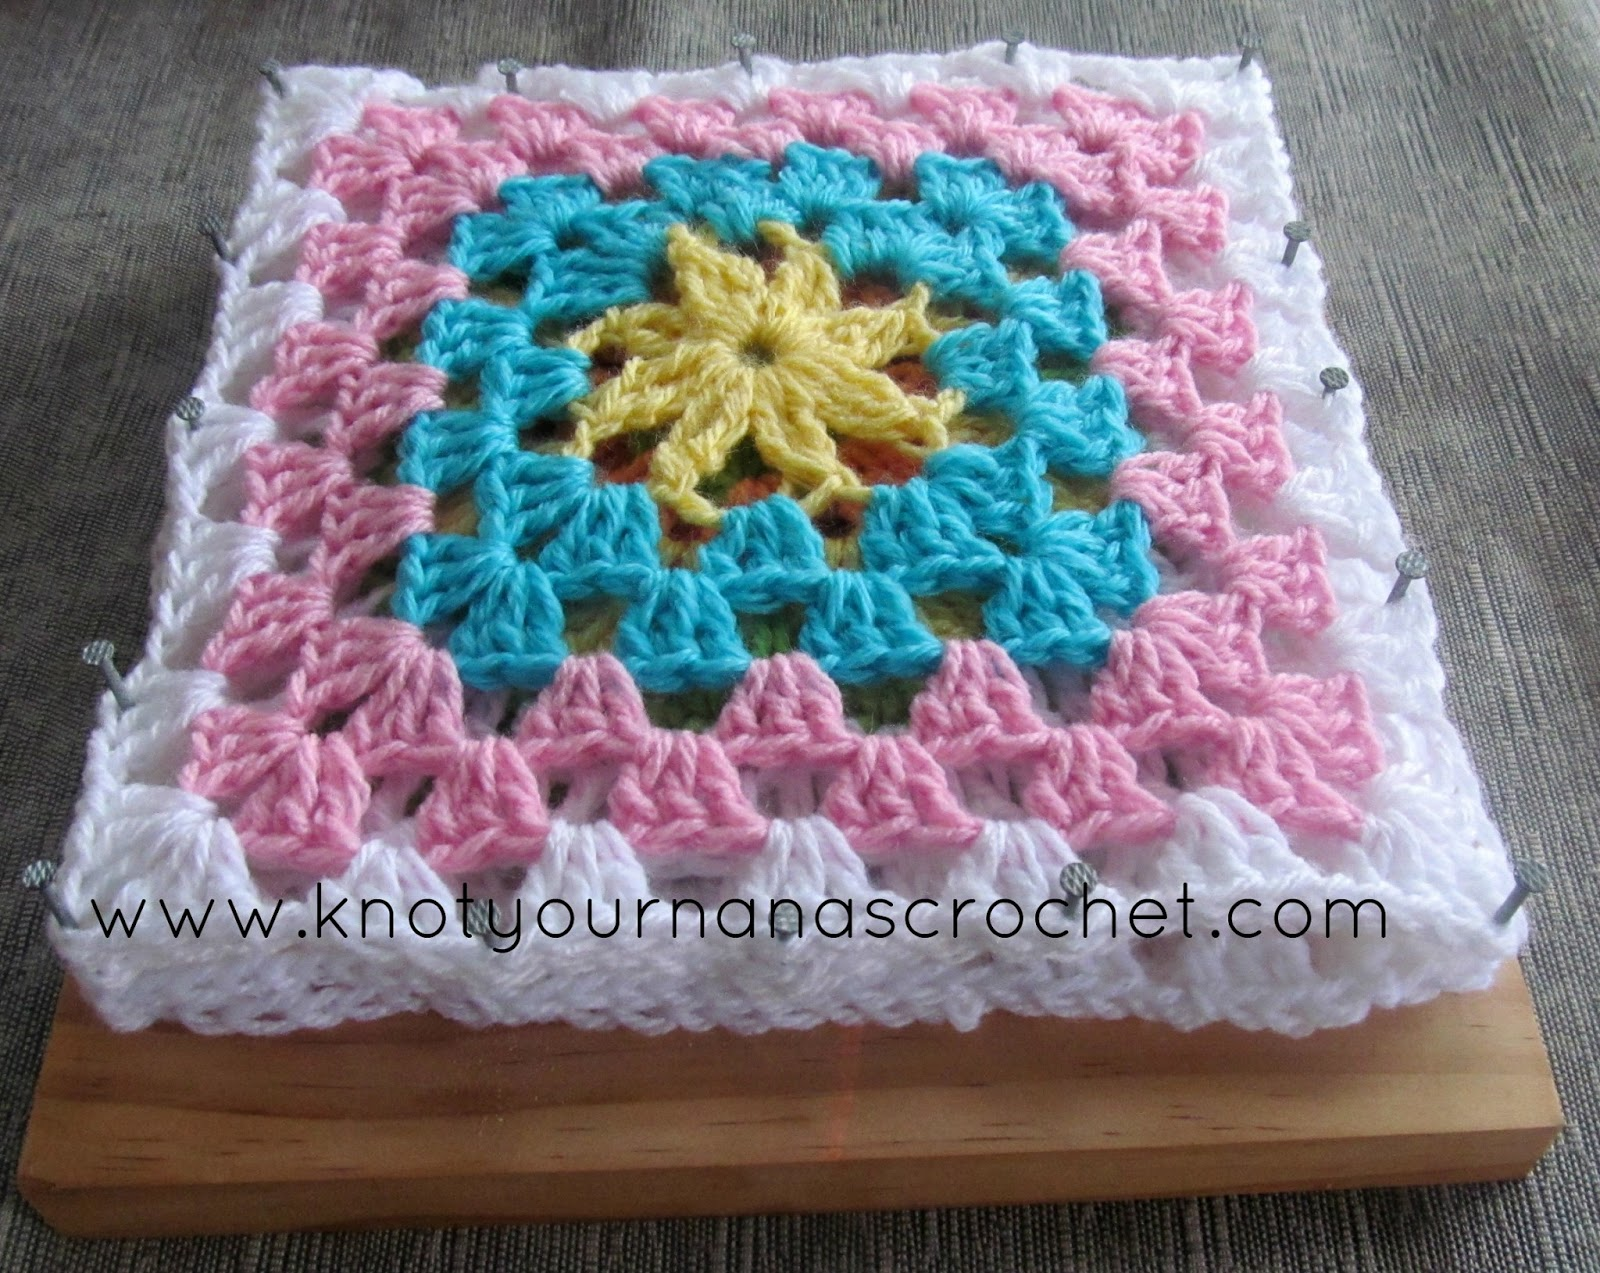 Crochet Blocking : Knot Your Nanas Crochet: How I Block my Acrylic Granny Squares